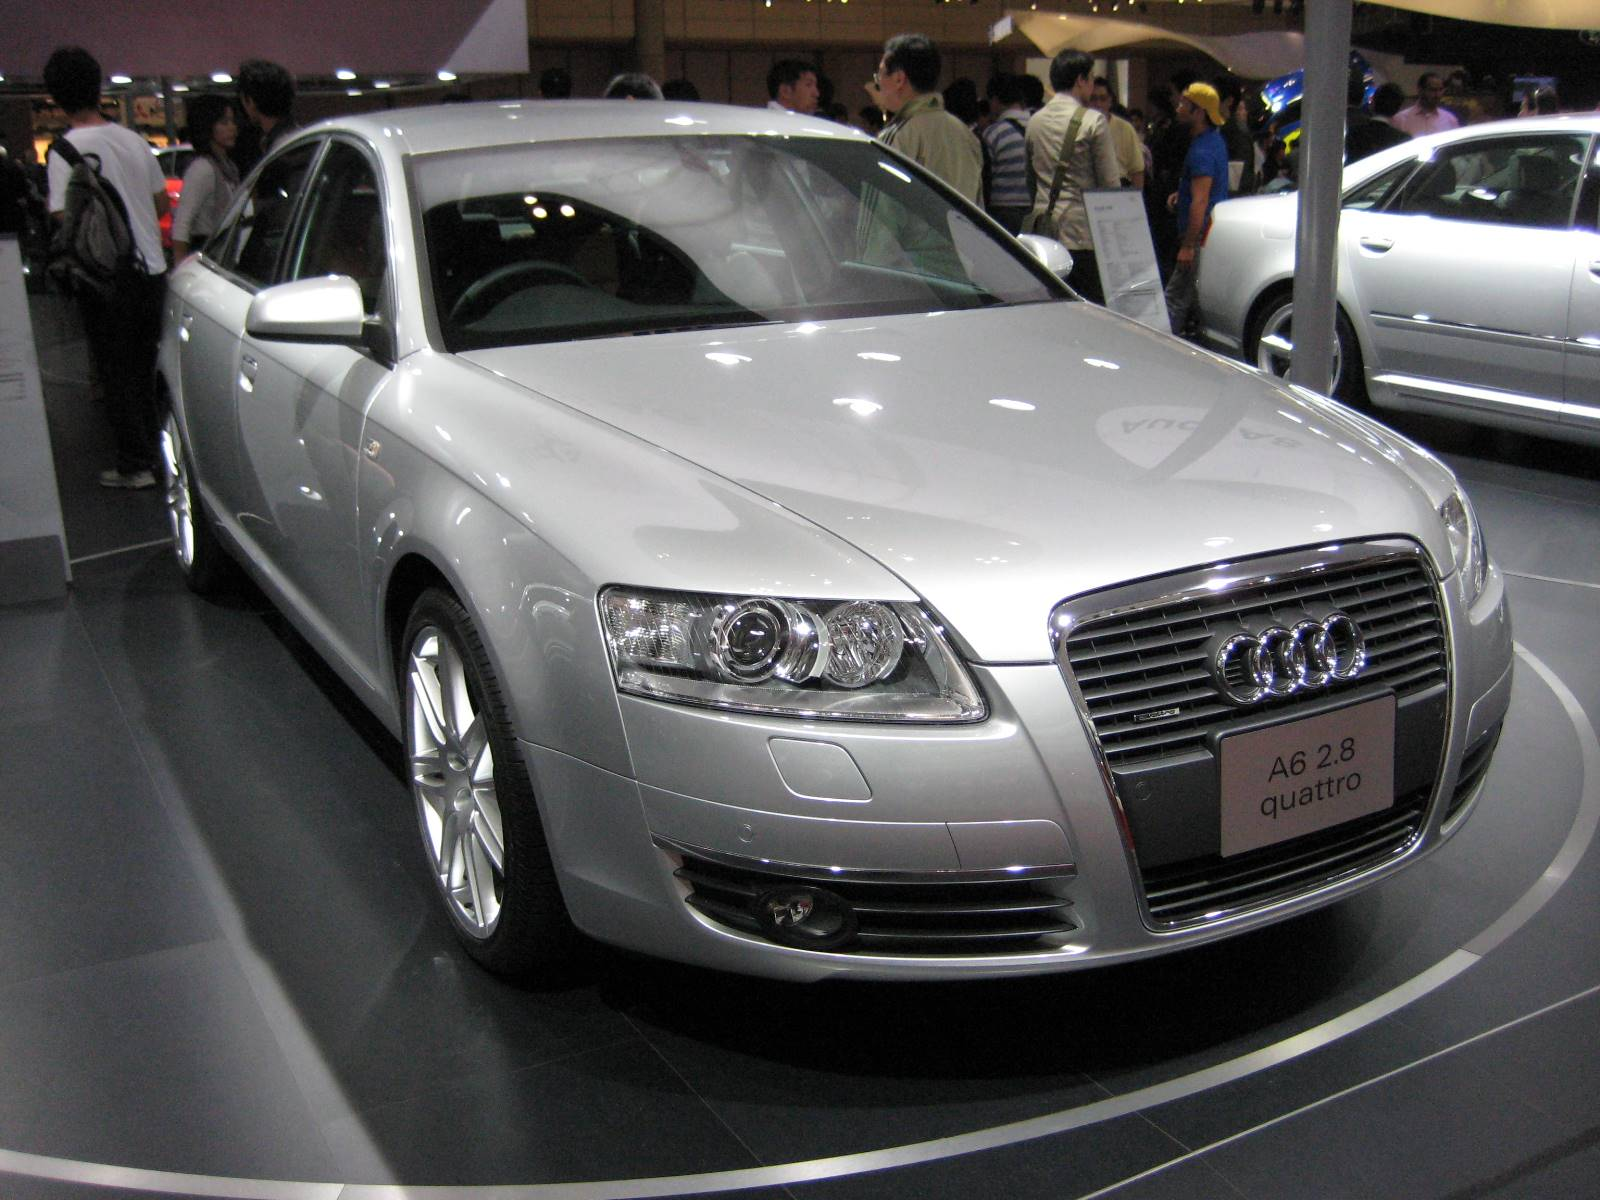 2007 audi a6 3 2 avant quattro wagon v6 awd auto. Black Bedroom Furniture Sets. Home Design Ideas